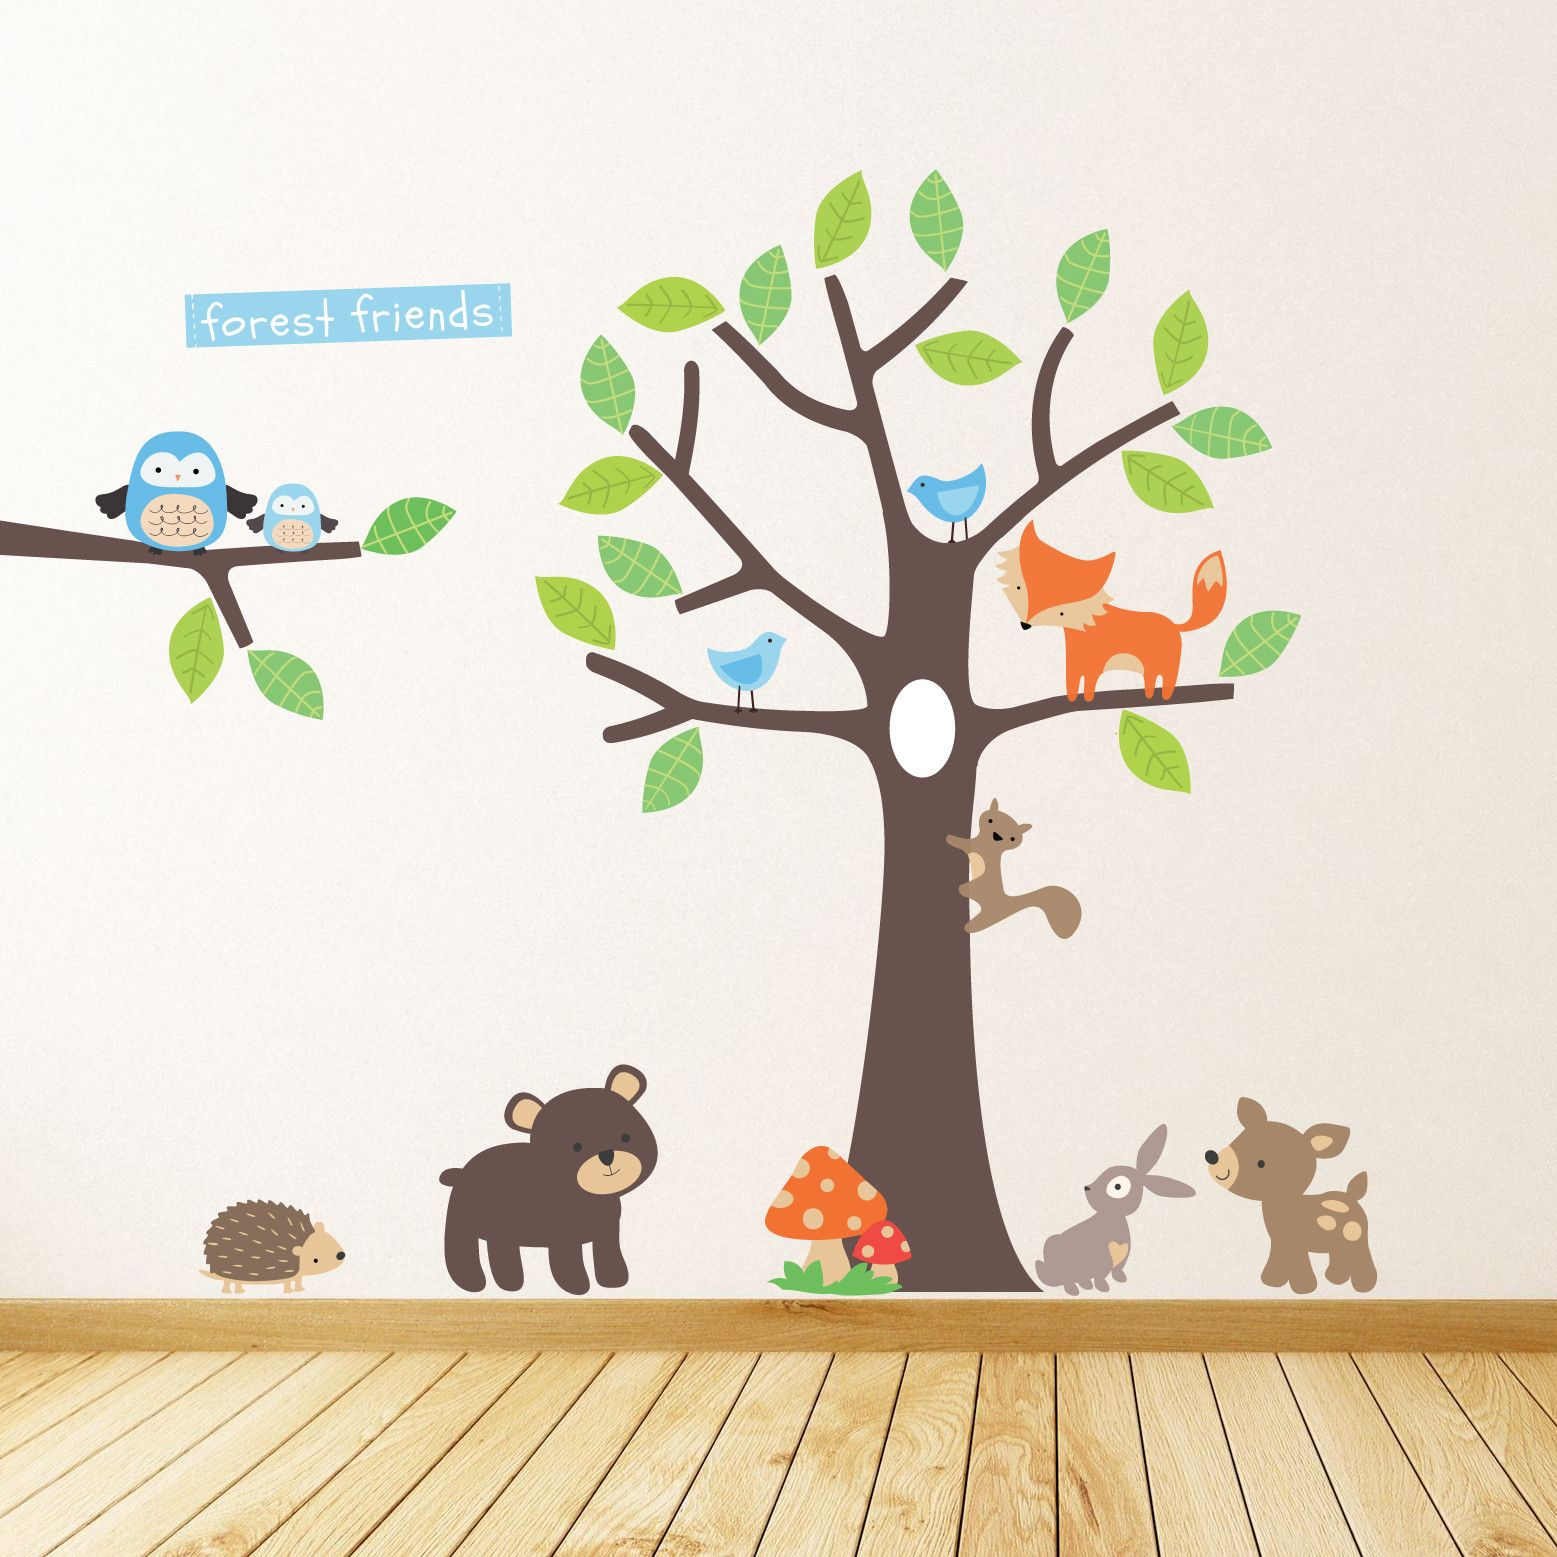 Forest Friends Tree Wall Stickers  sc 1 st  Pinterest & Forest Friends Tree Wall Stickers | Wall sticker Walls and Wall decals